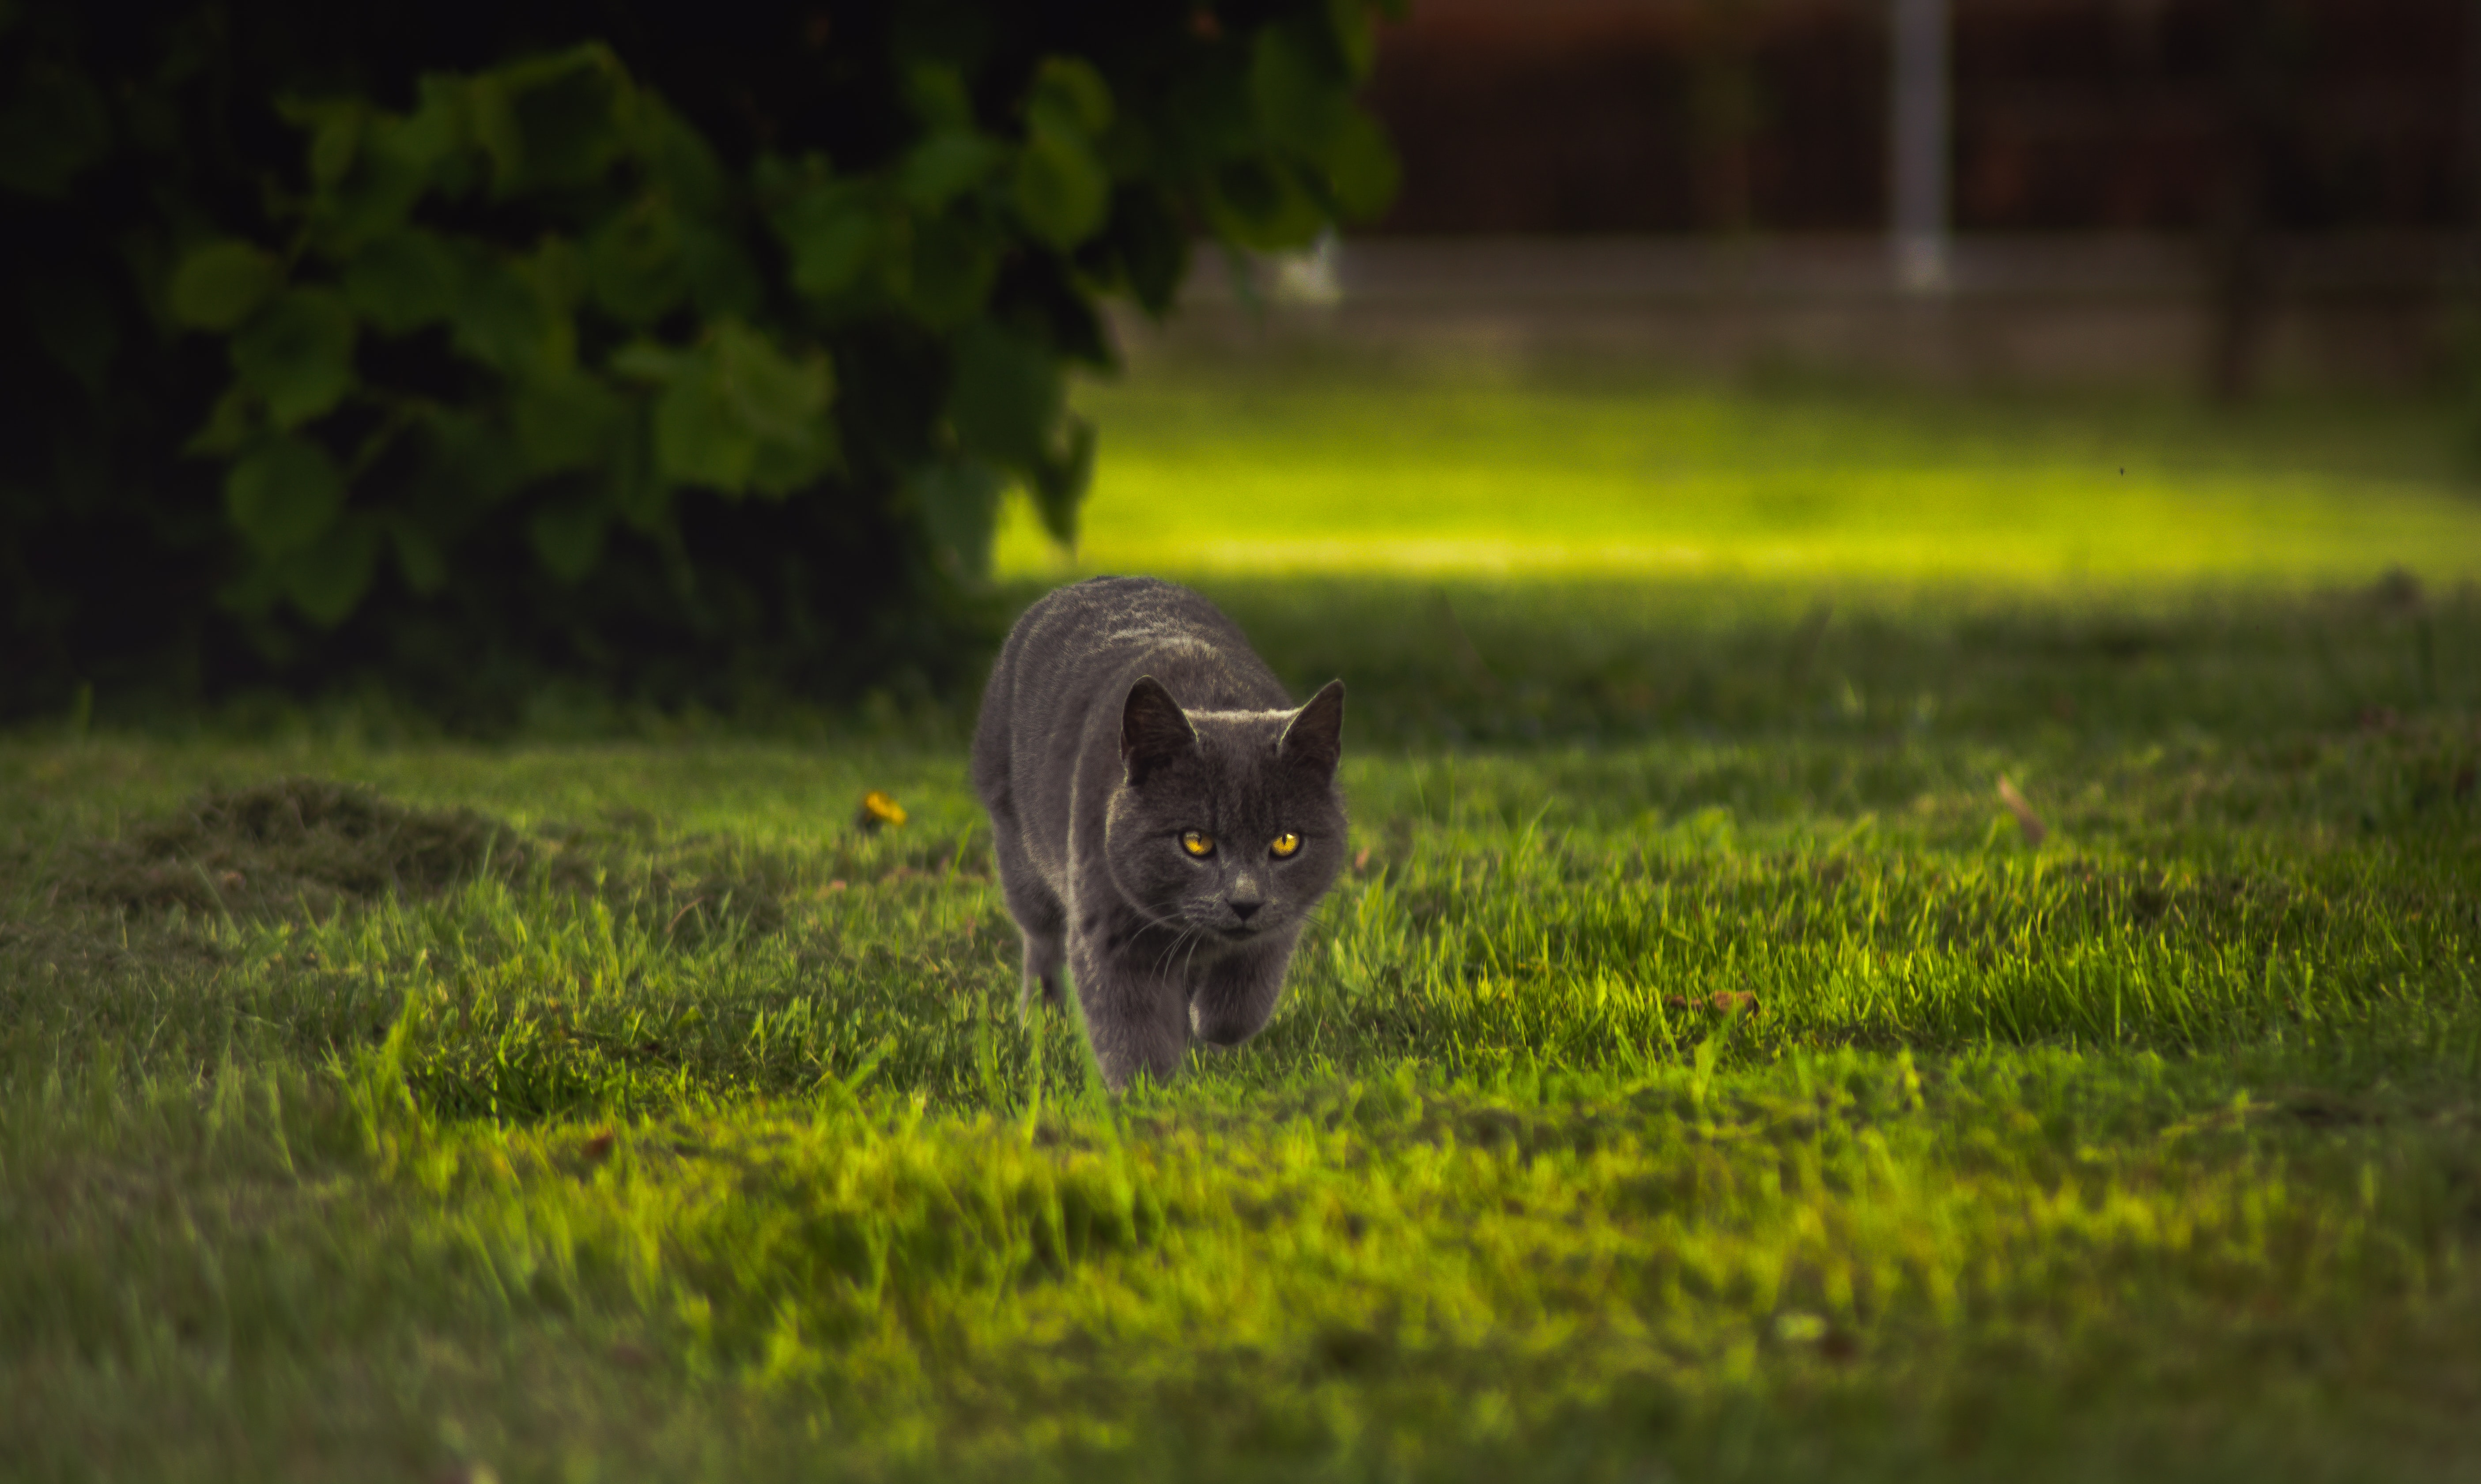 gray cat walking on green grass during daytime